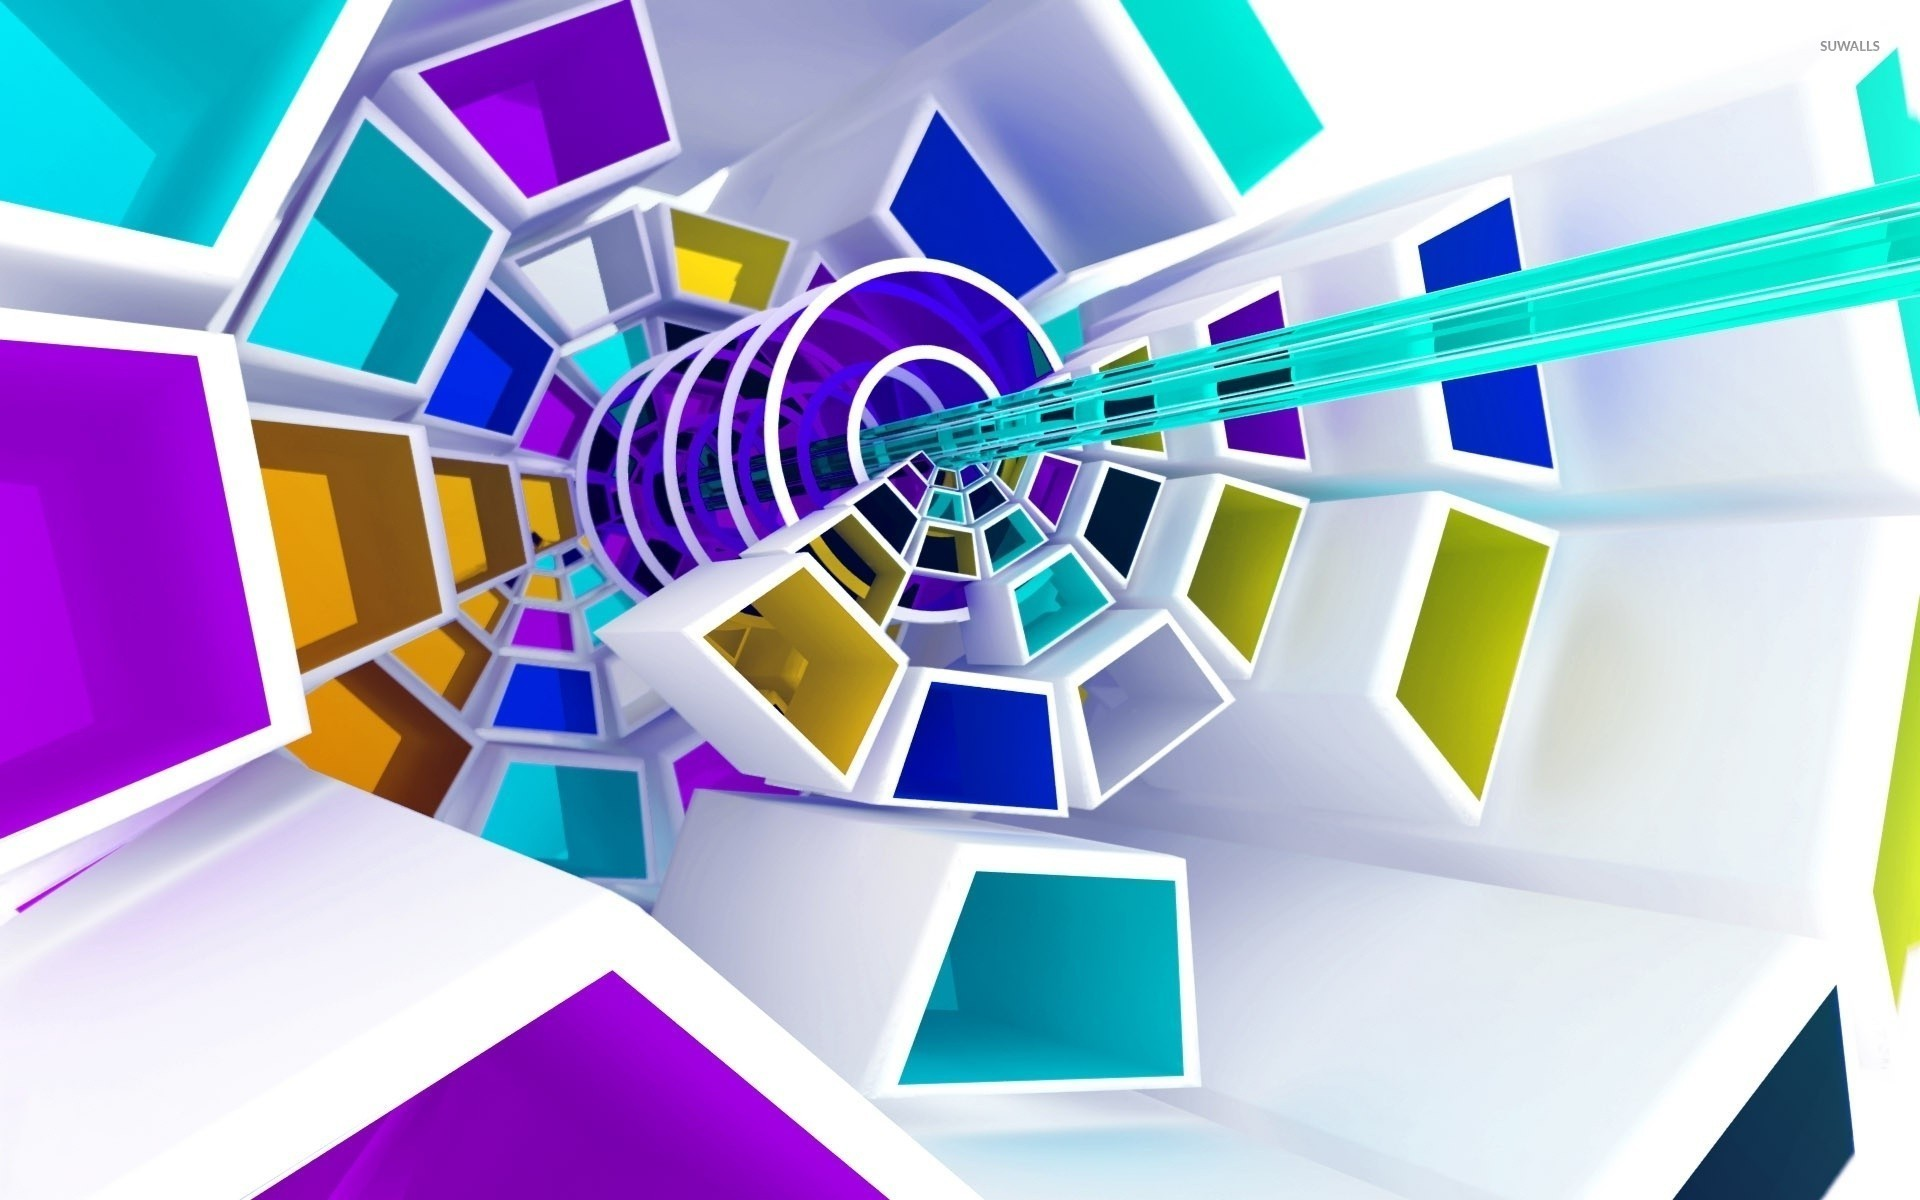 Res: 1920x1200, Spiraling shapes wallpaper